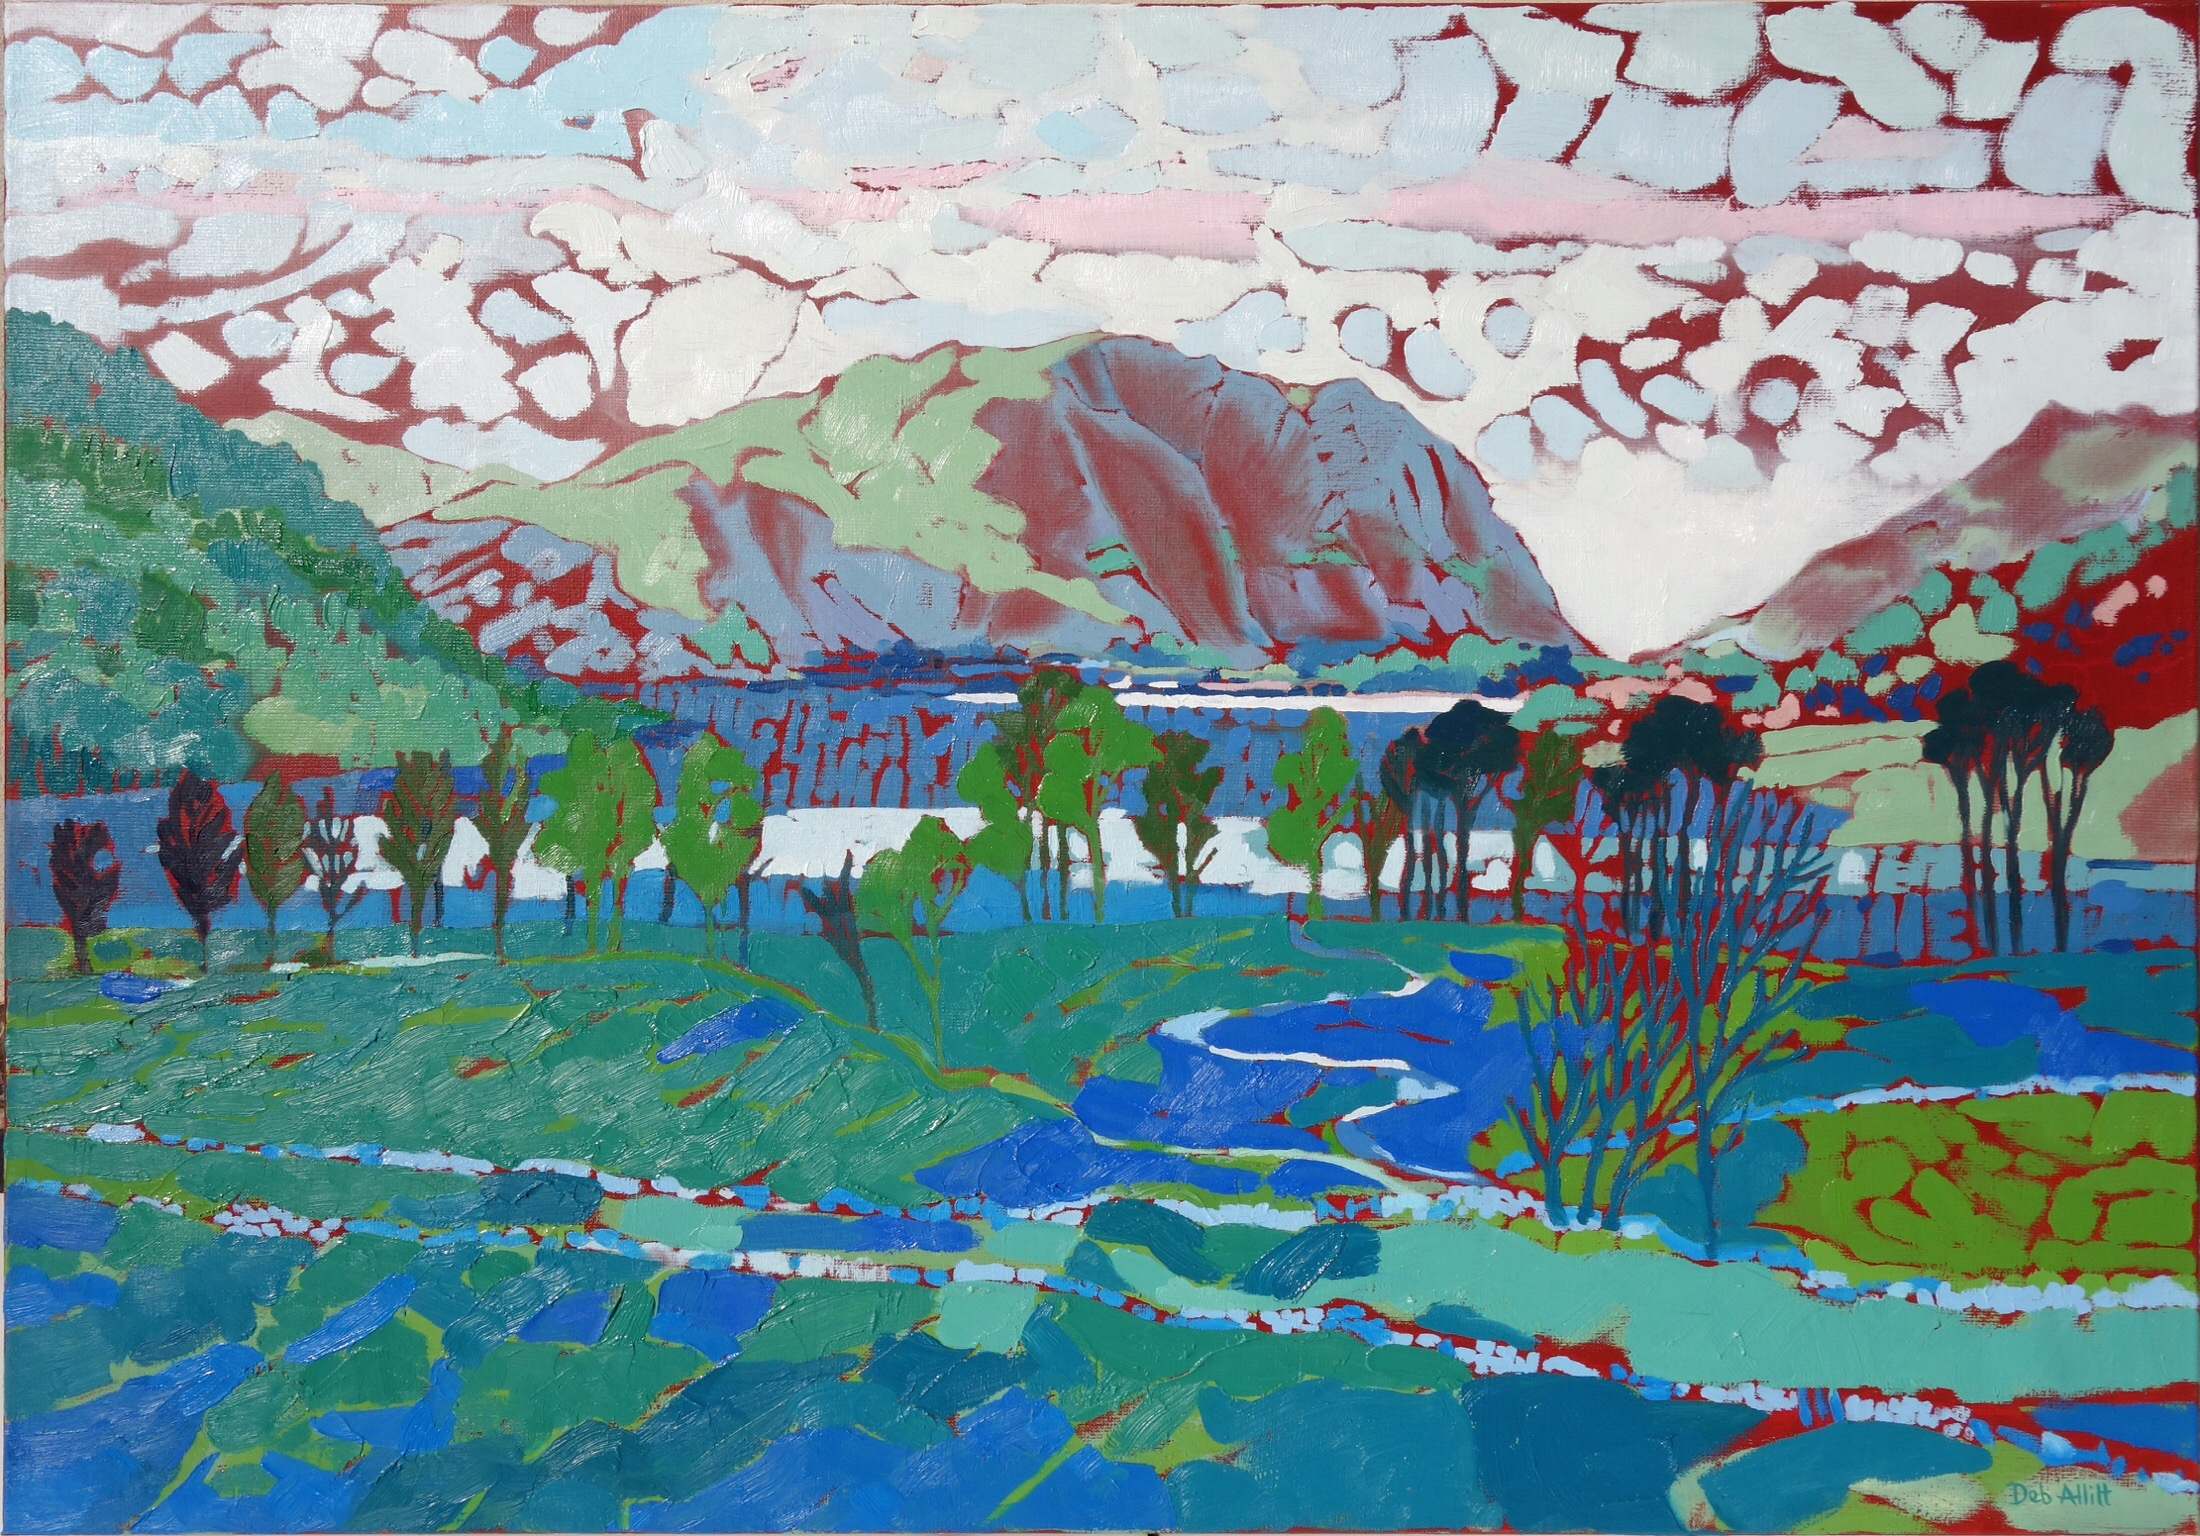 Buttermere Evening Sky. Oil on canvas. 70 x 100 cm.